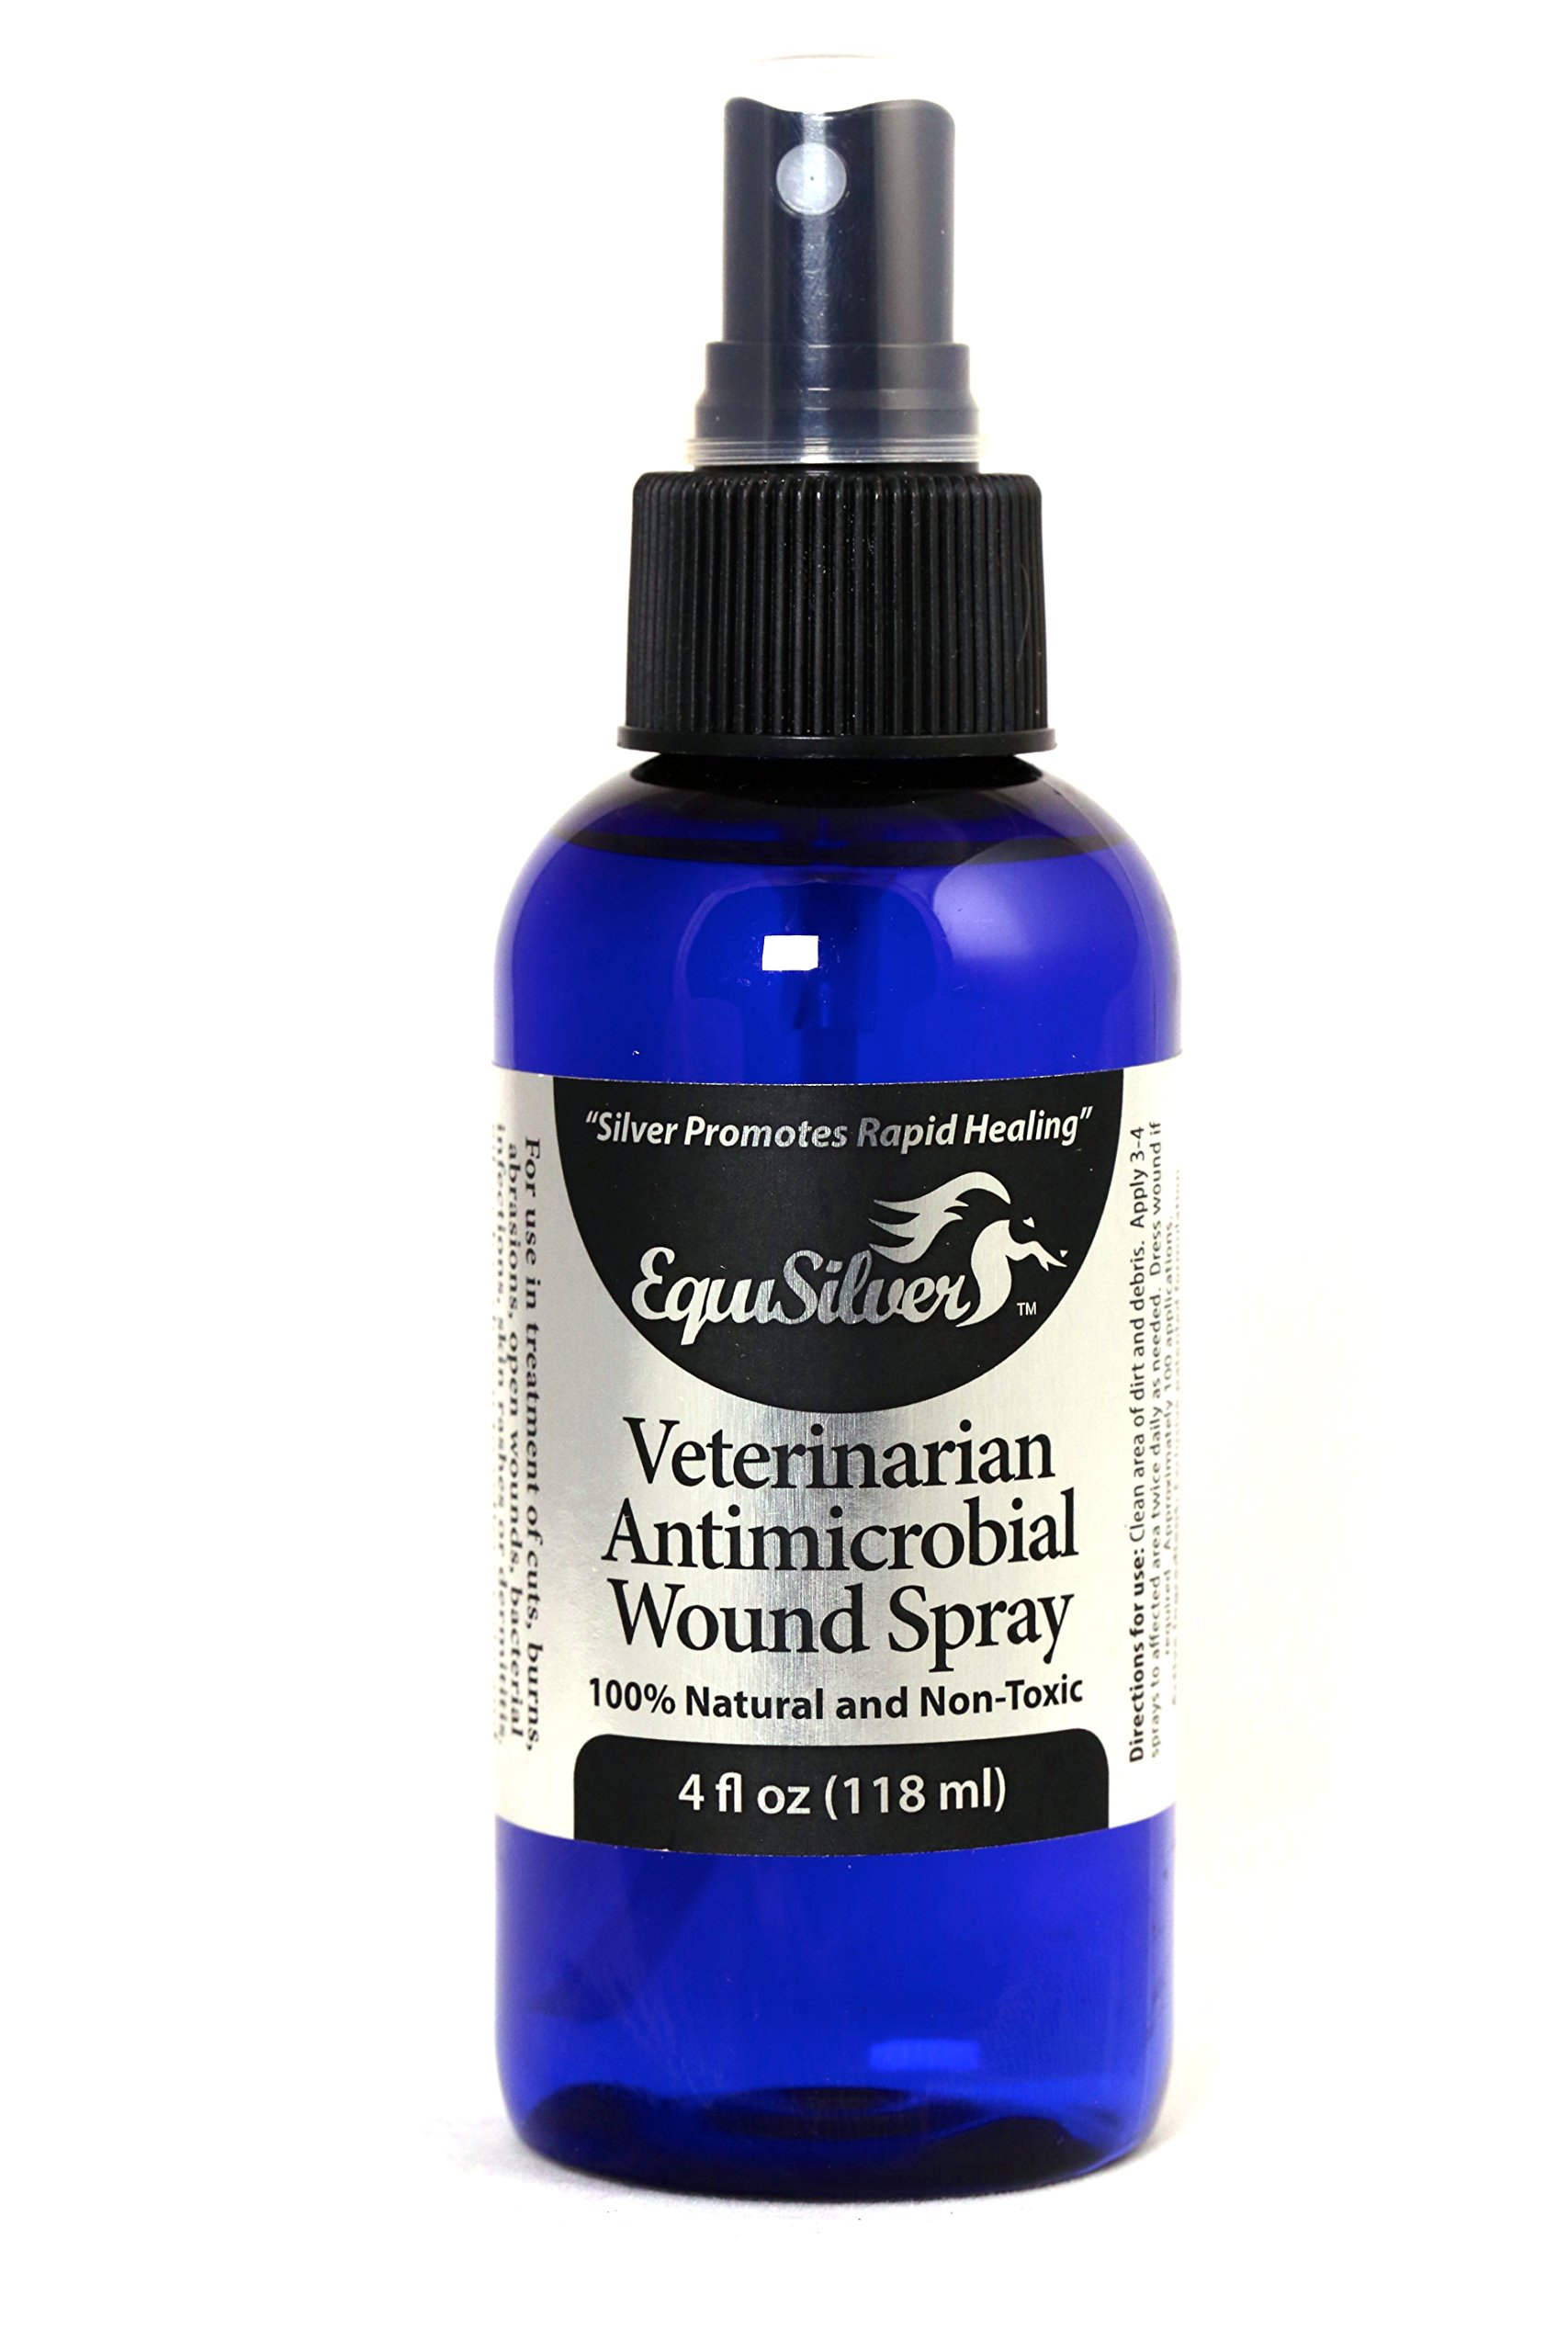 Vet Formulated Wound Spray for Dogs and Cats | Relief for Hot Spots Skin Infection